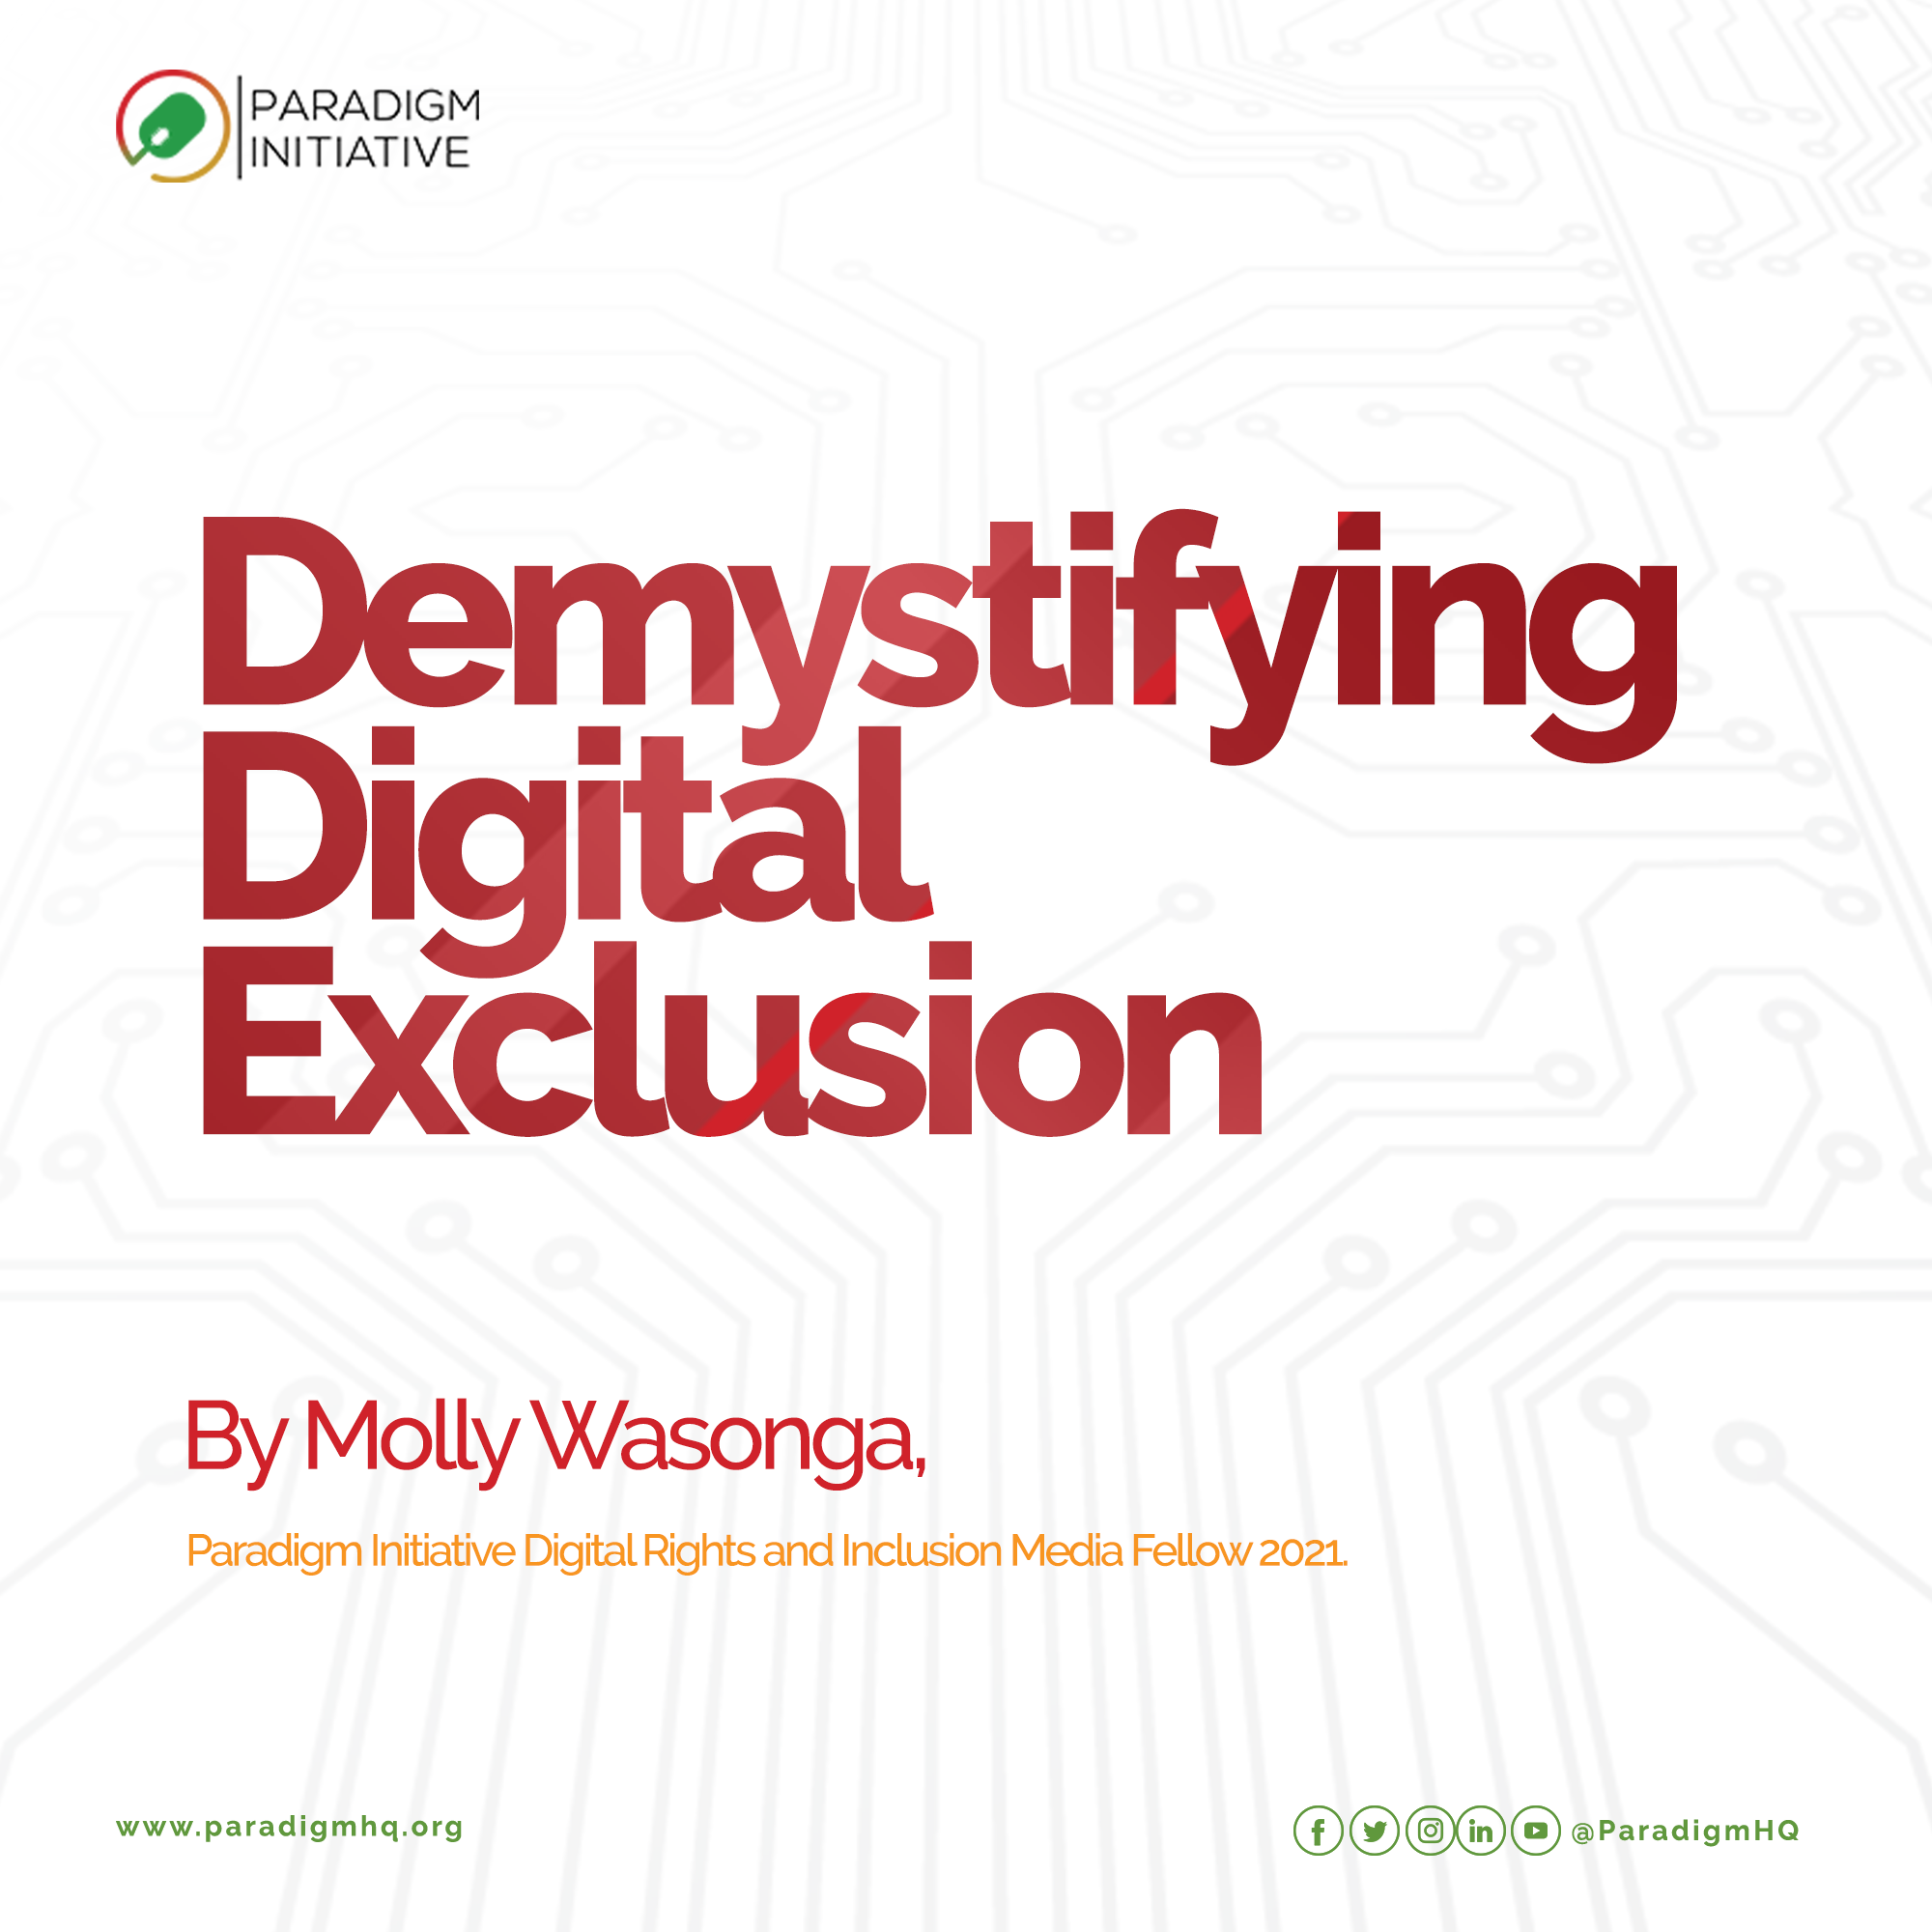 Demystifying Digital Exclusion